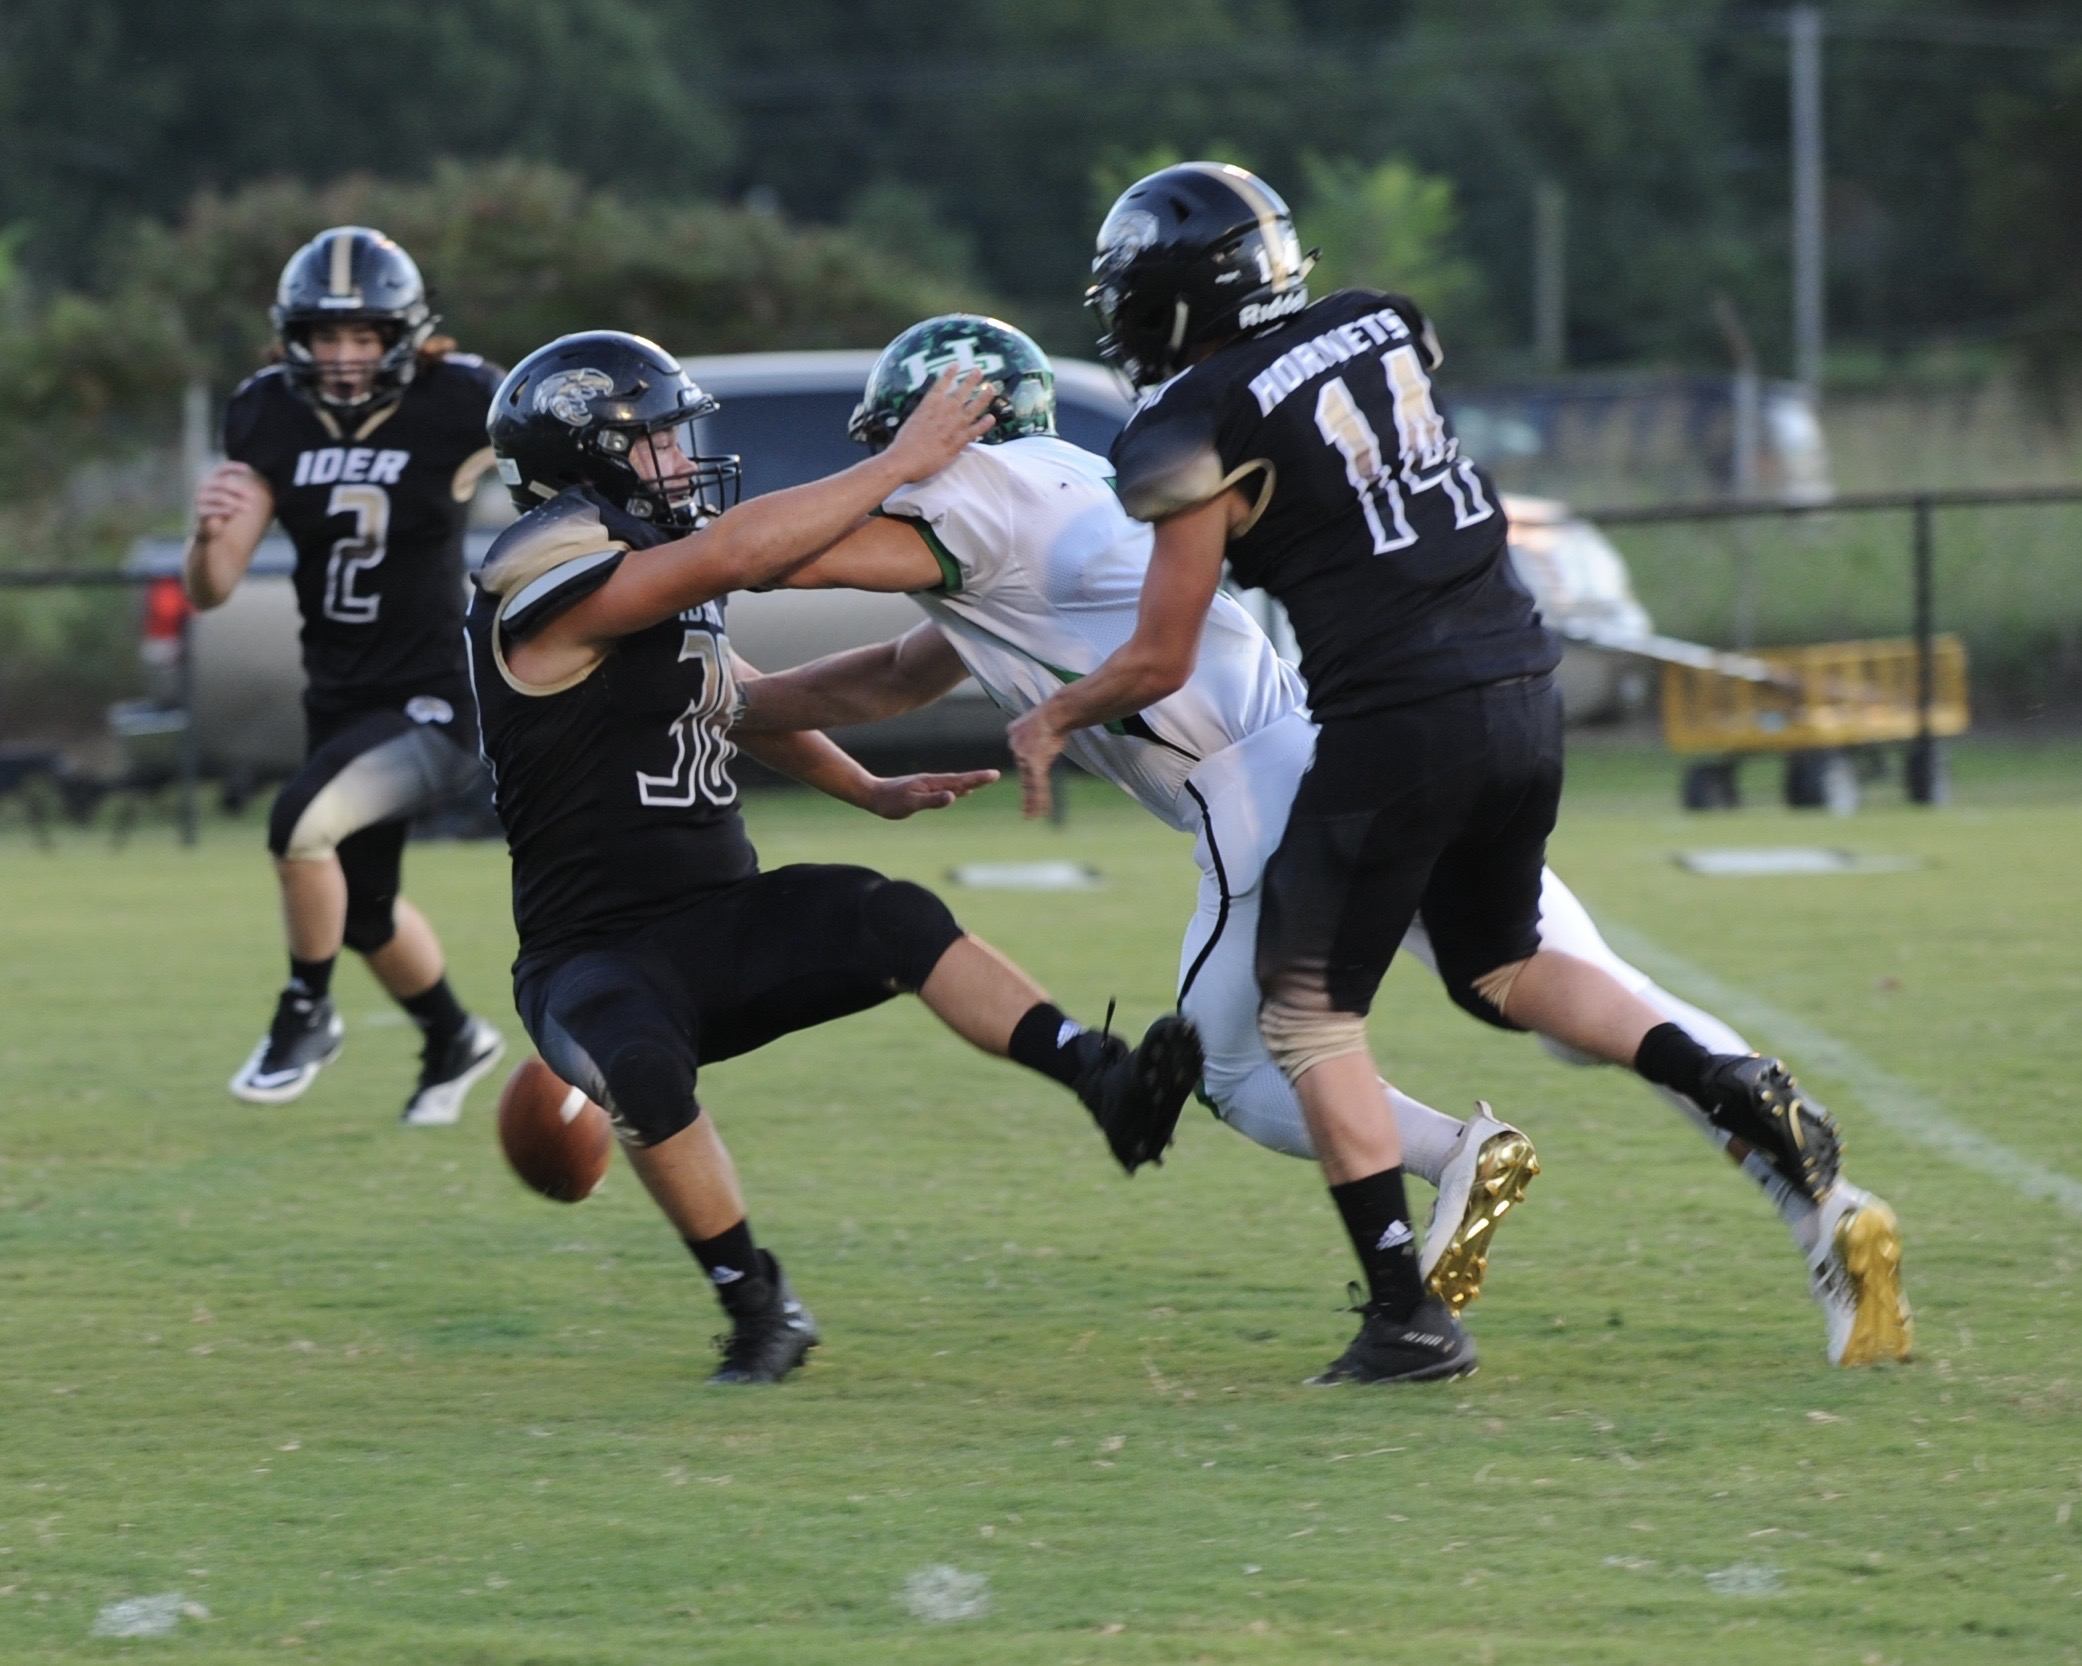 Photo by Howard Cole for The Cullman Tribune